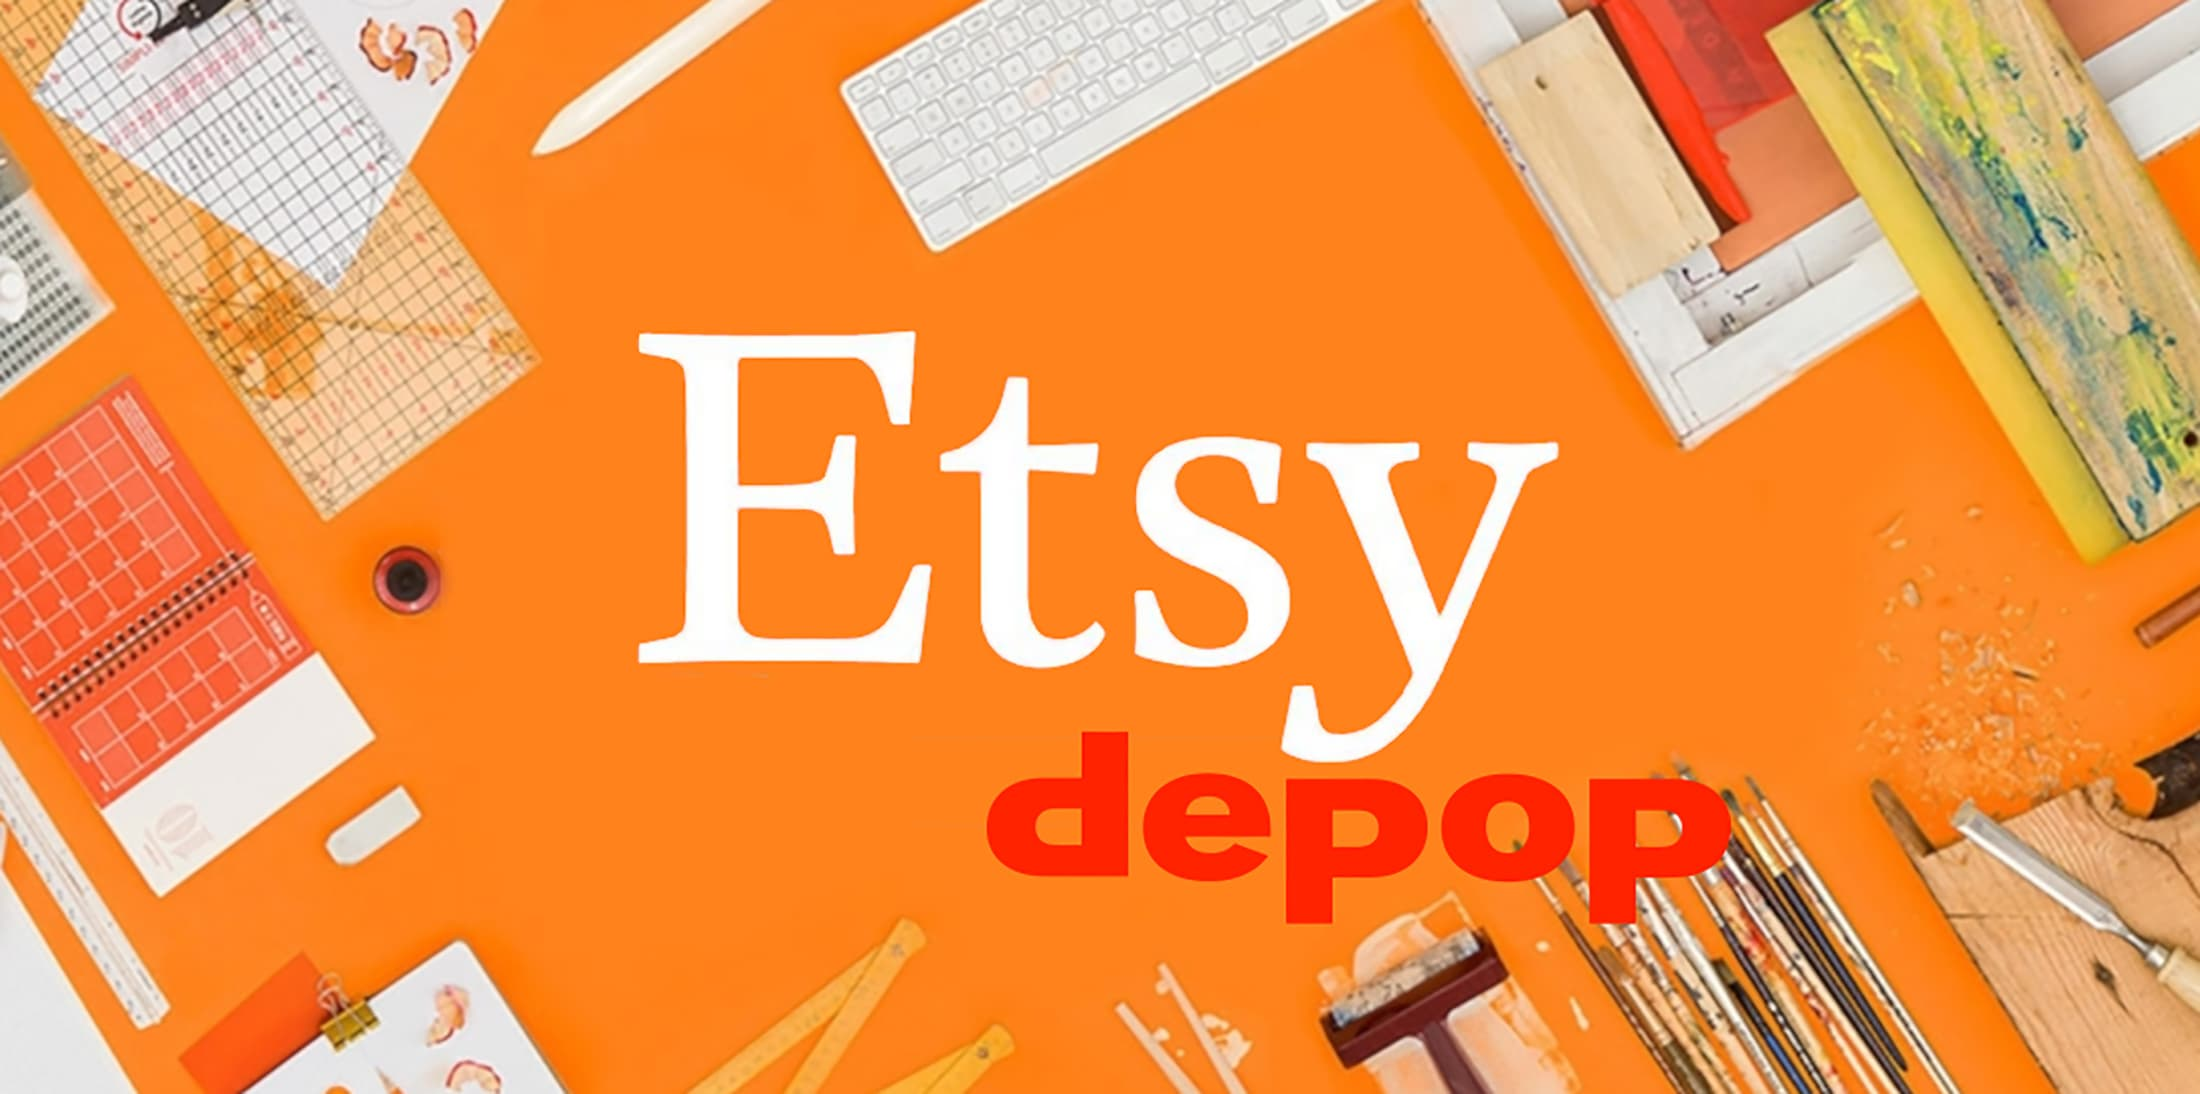 Etsy Buys Depop For <img width=